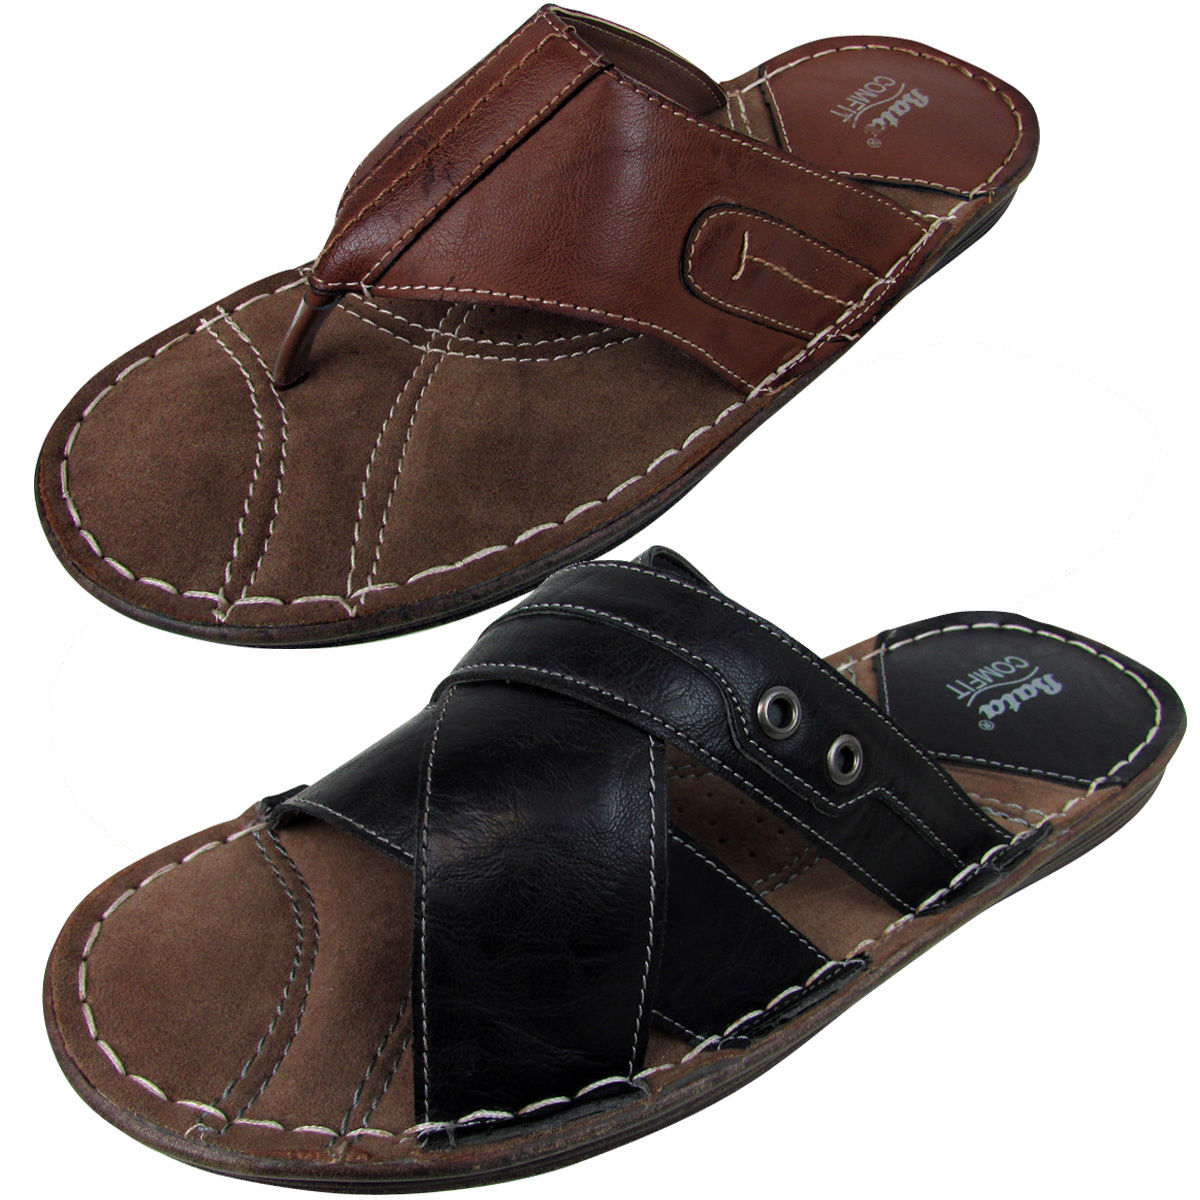 Bata Dress Shoes